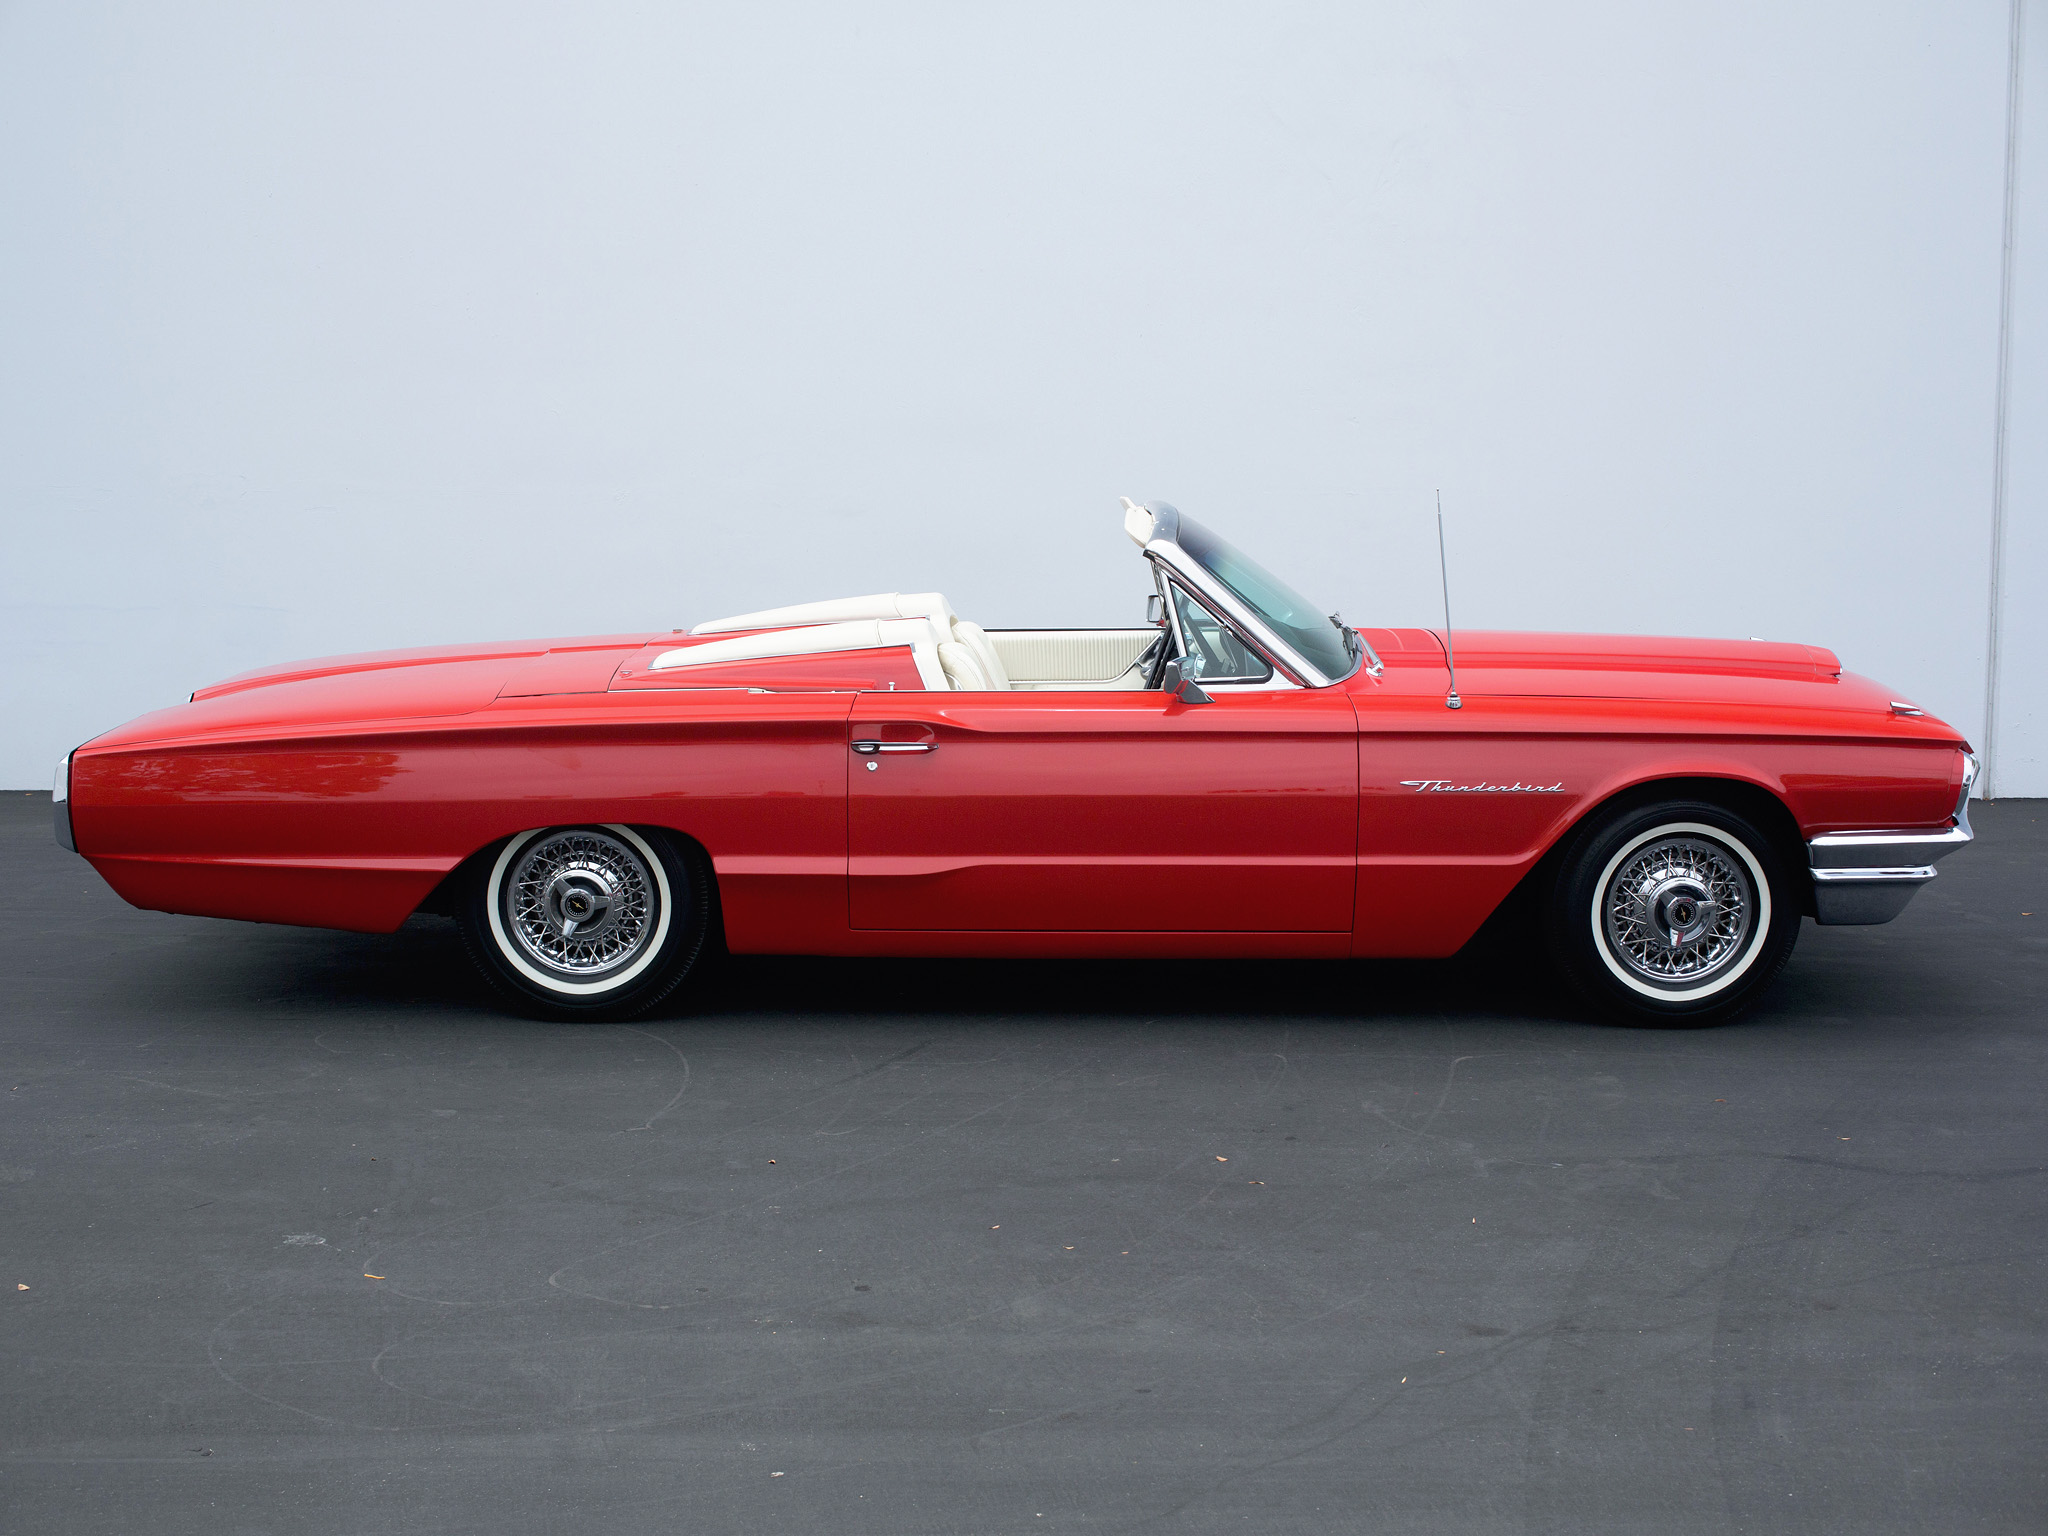 1964 ford thunderbird convertible 76a classic f wallpaper 2048x1536 11381. Cars Review. Best American Auto & Cars Review